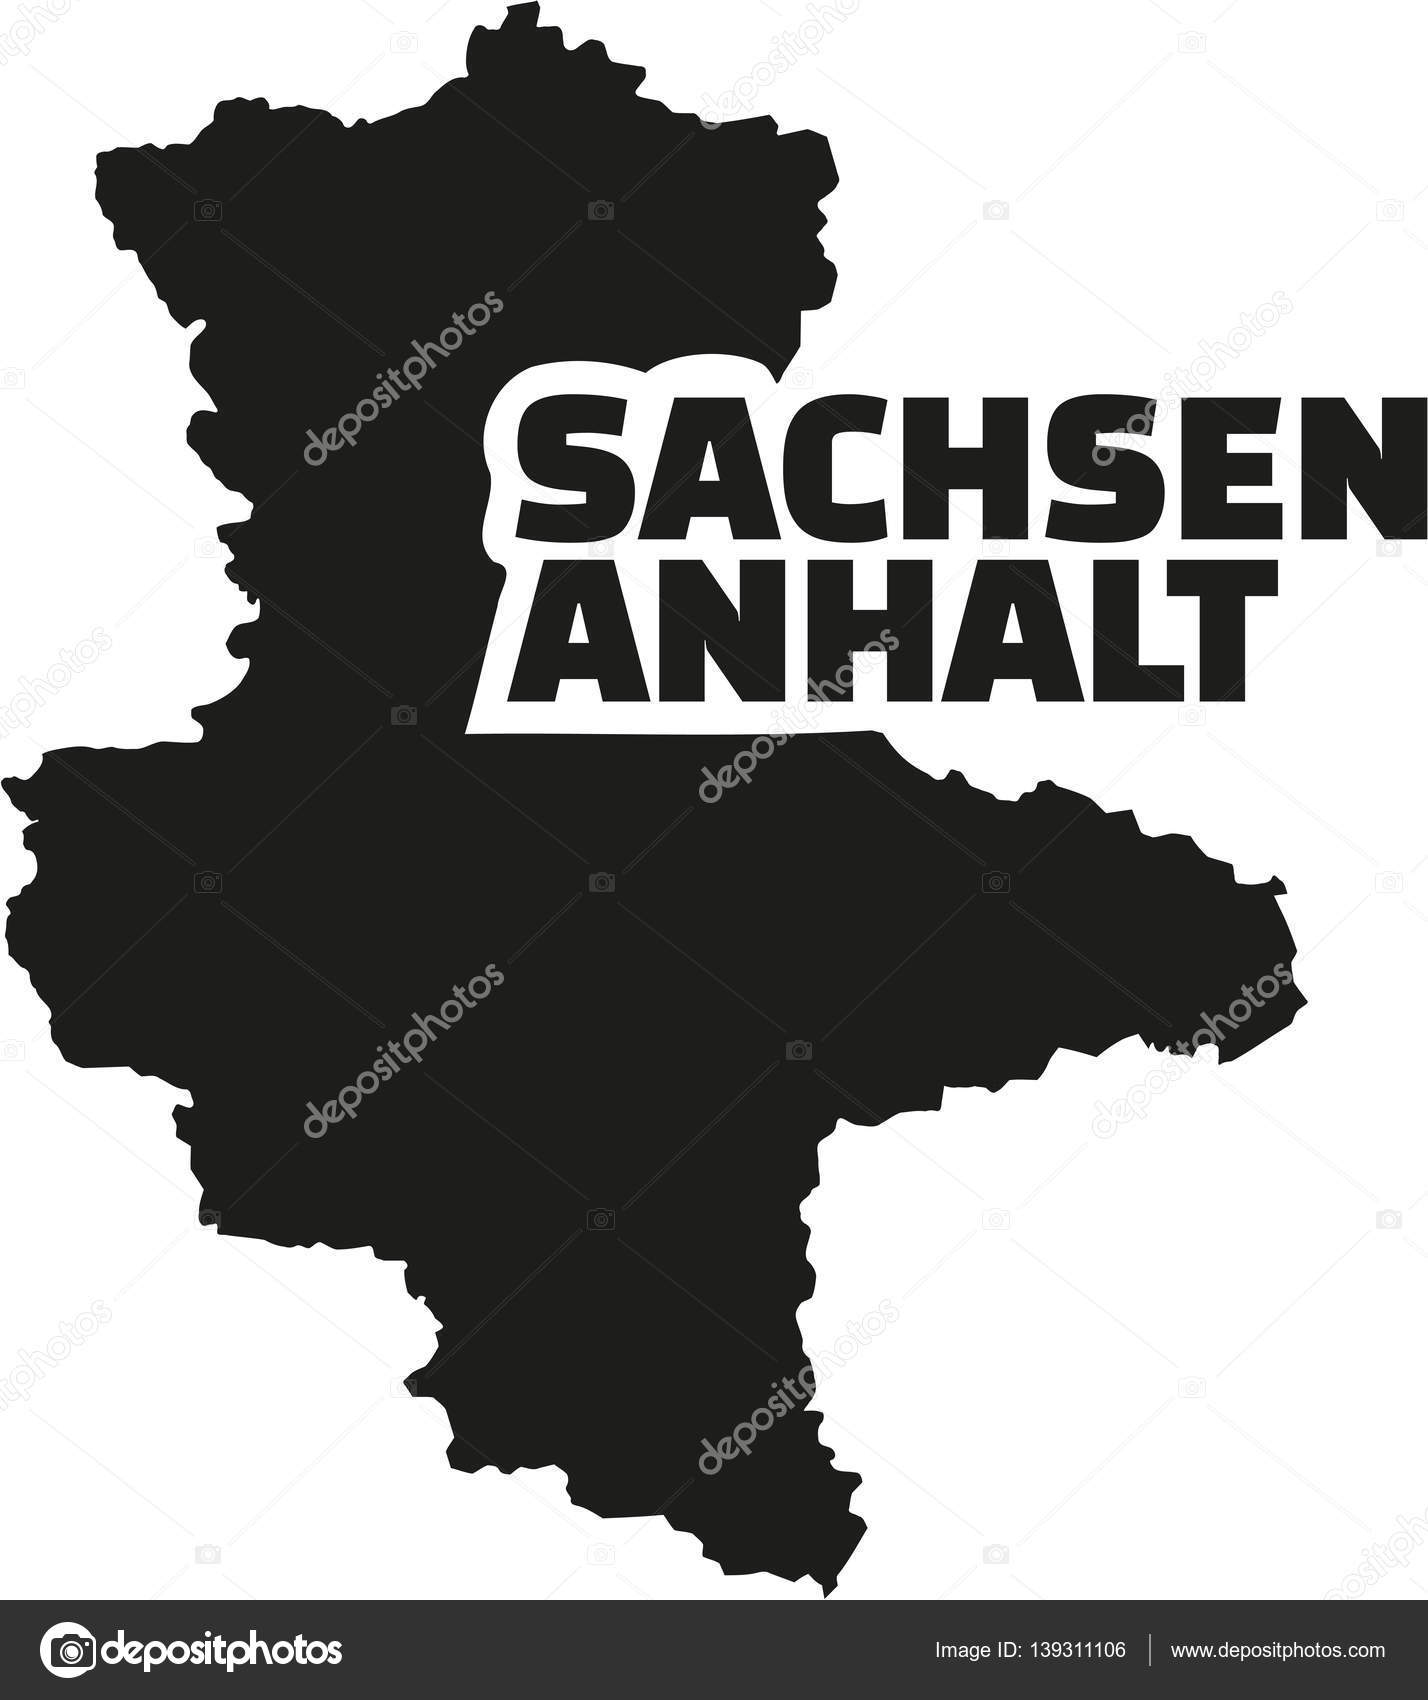 SaxonyAnhalt map with german title Stock Vector miceking 139311106